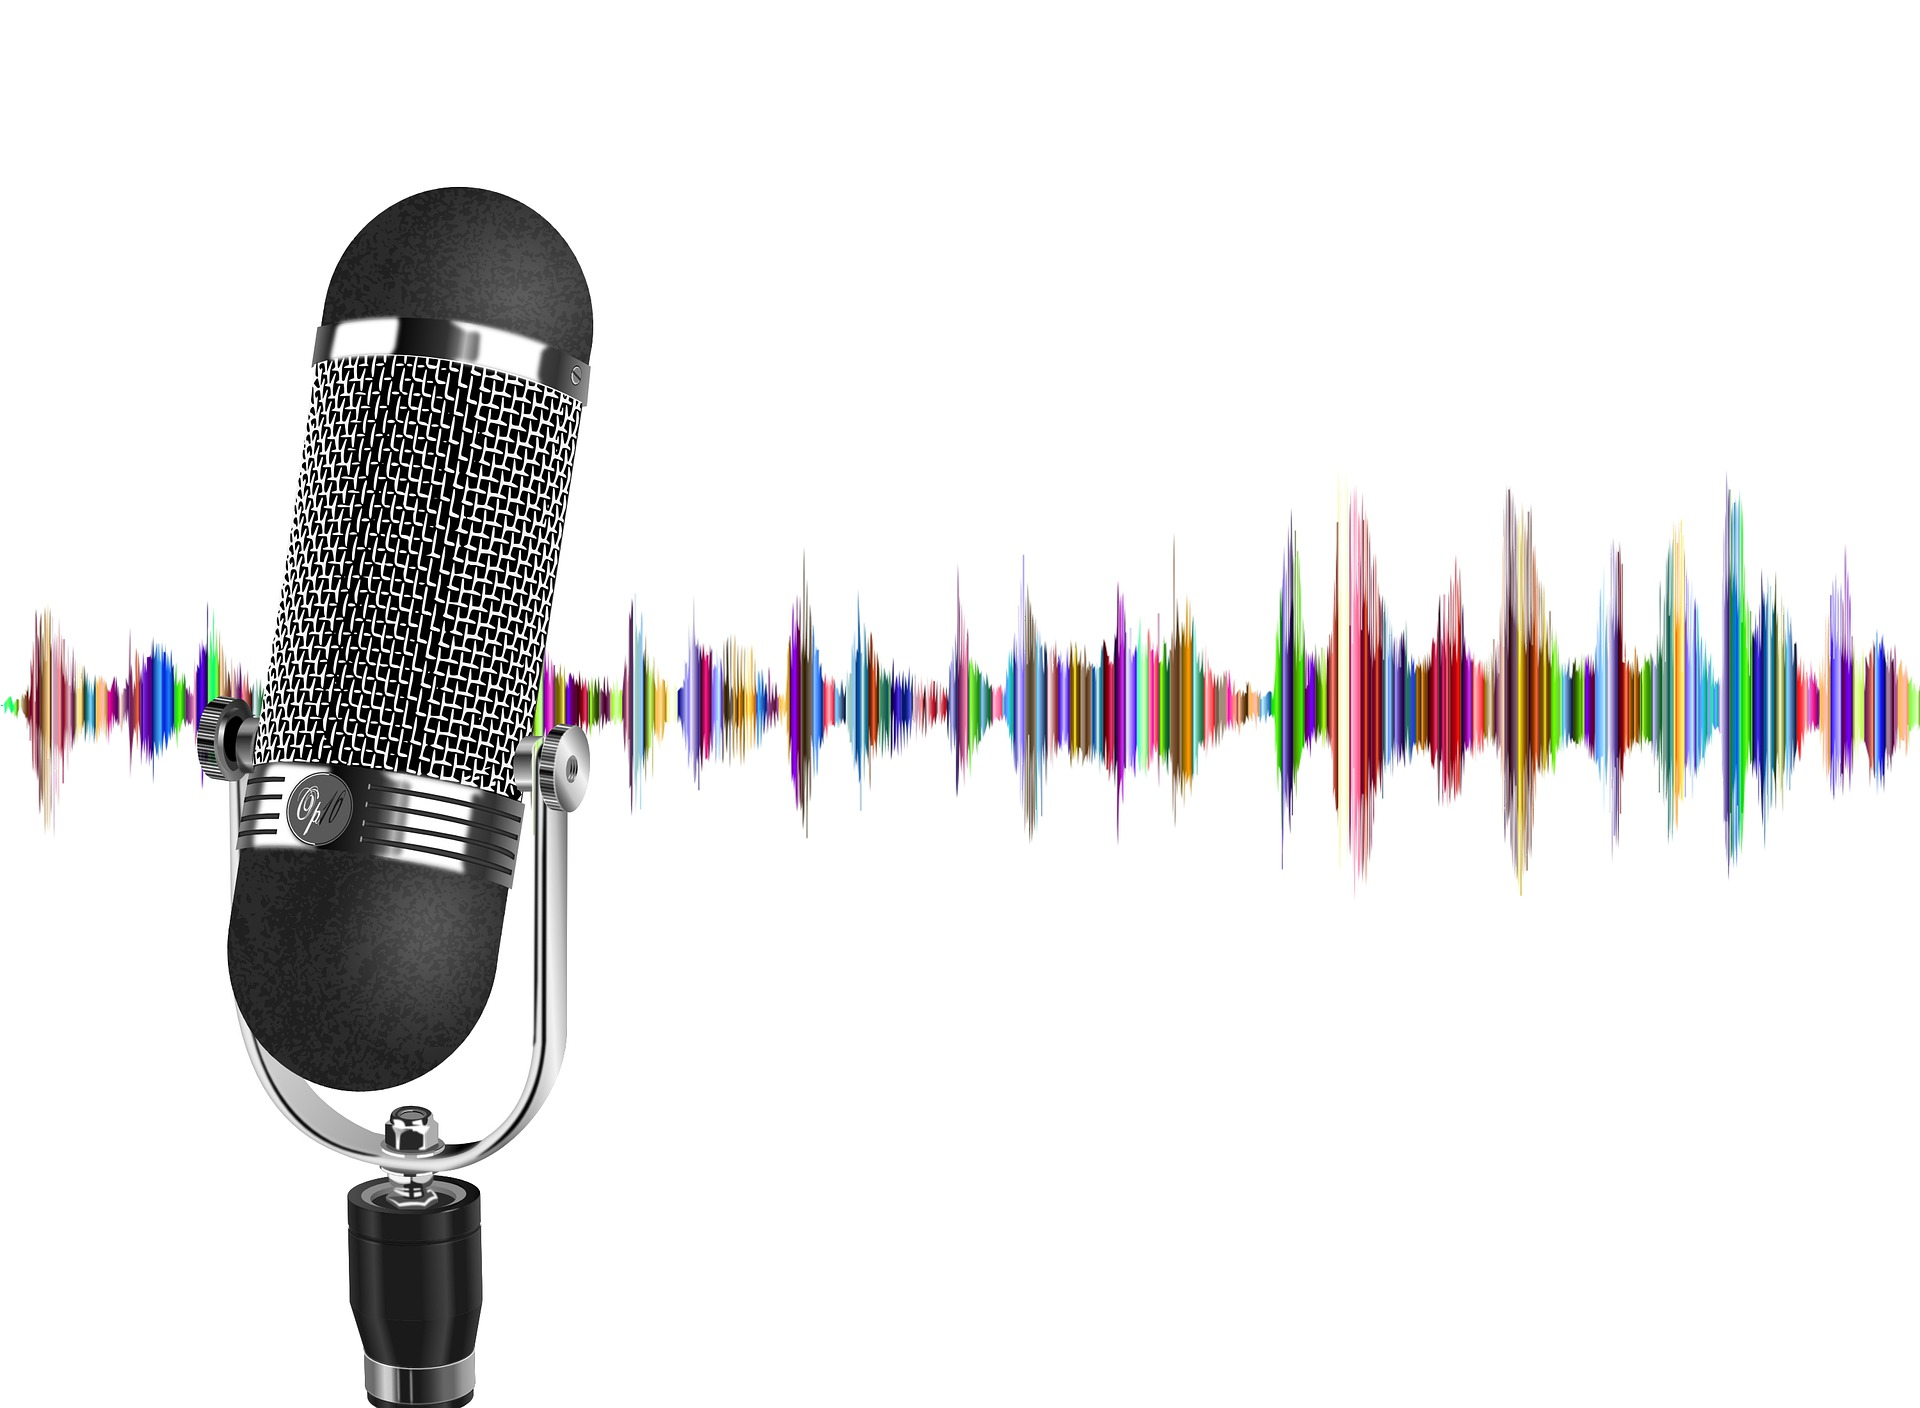 New York Times Adds to Its Audio Journalism